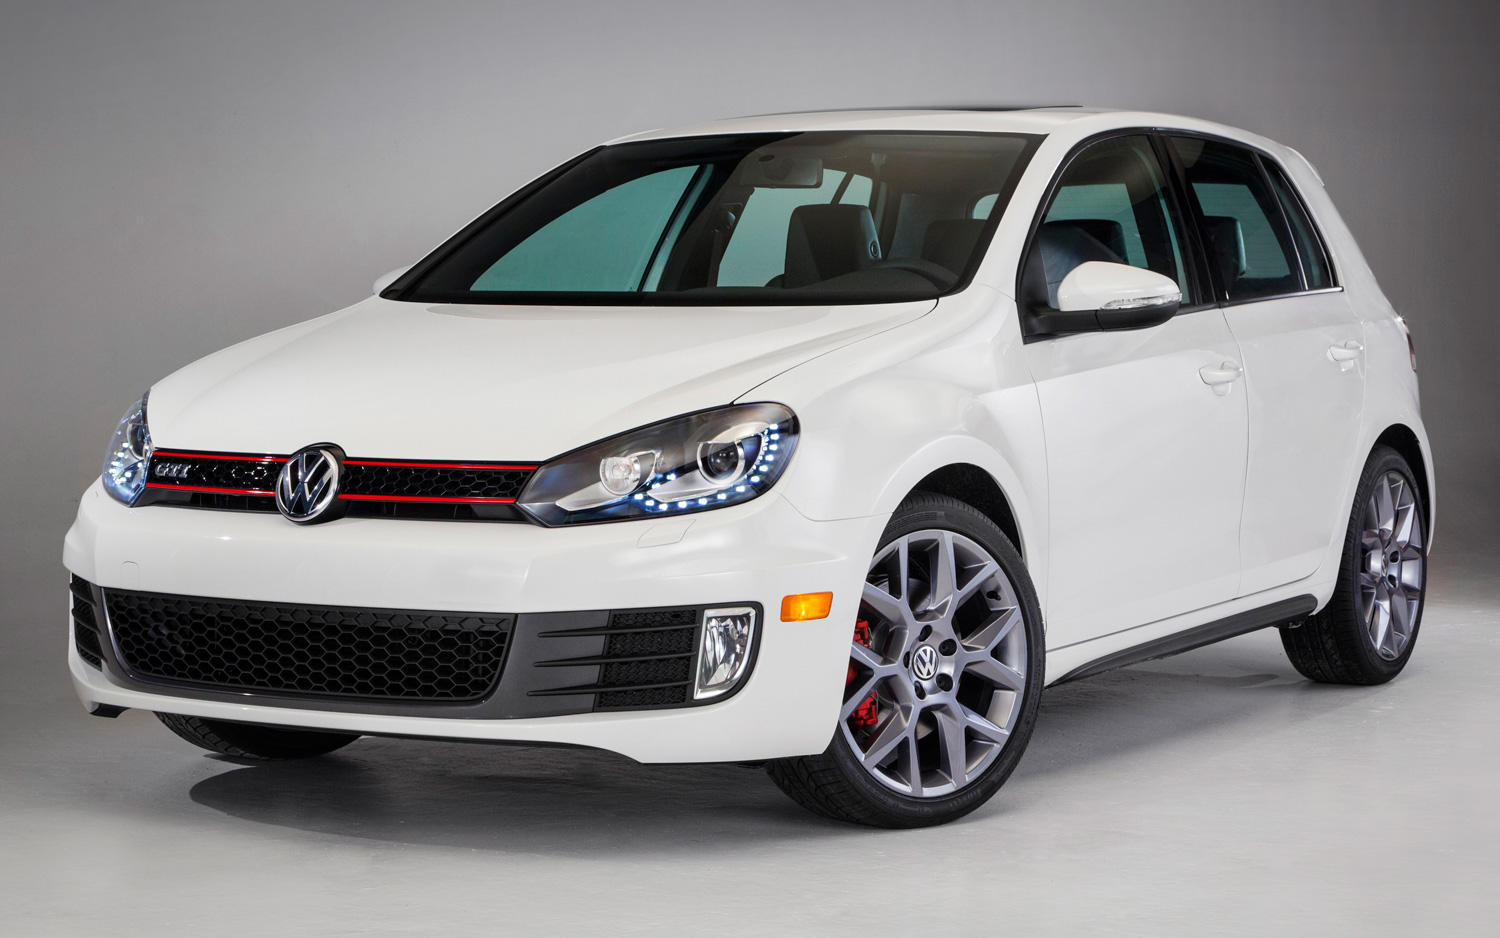 Vw gti drivers edition 2014.